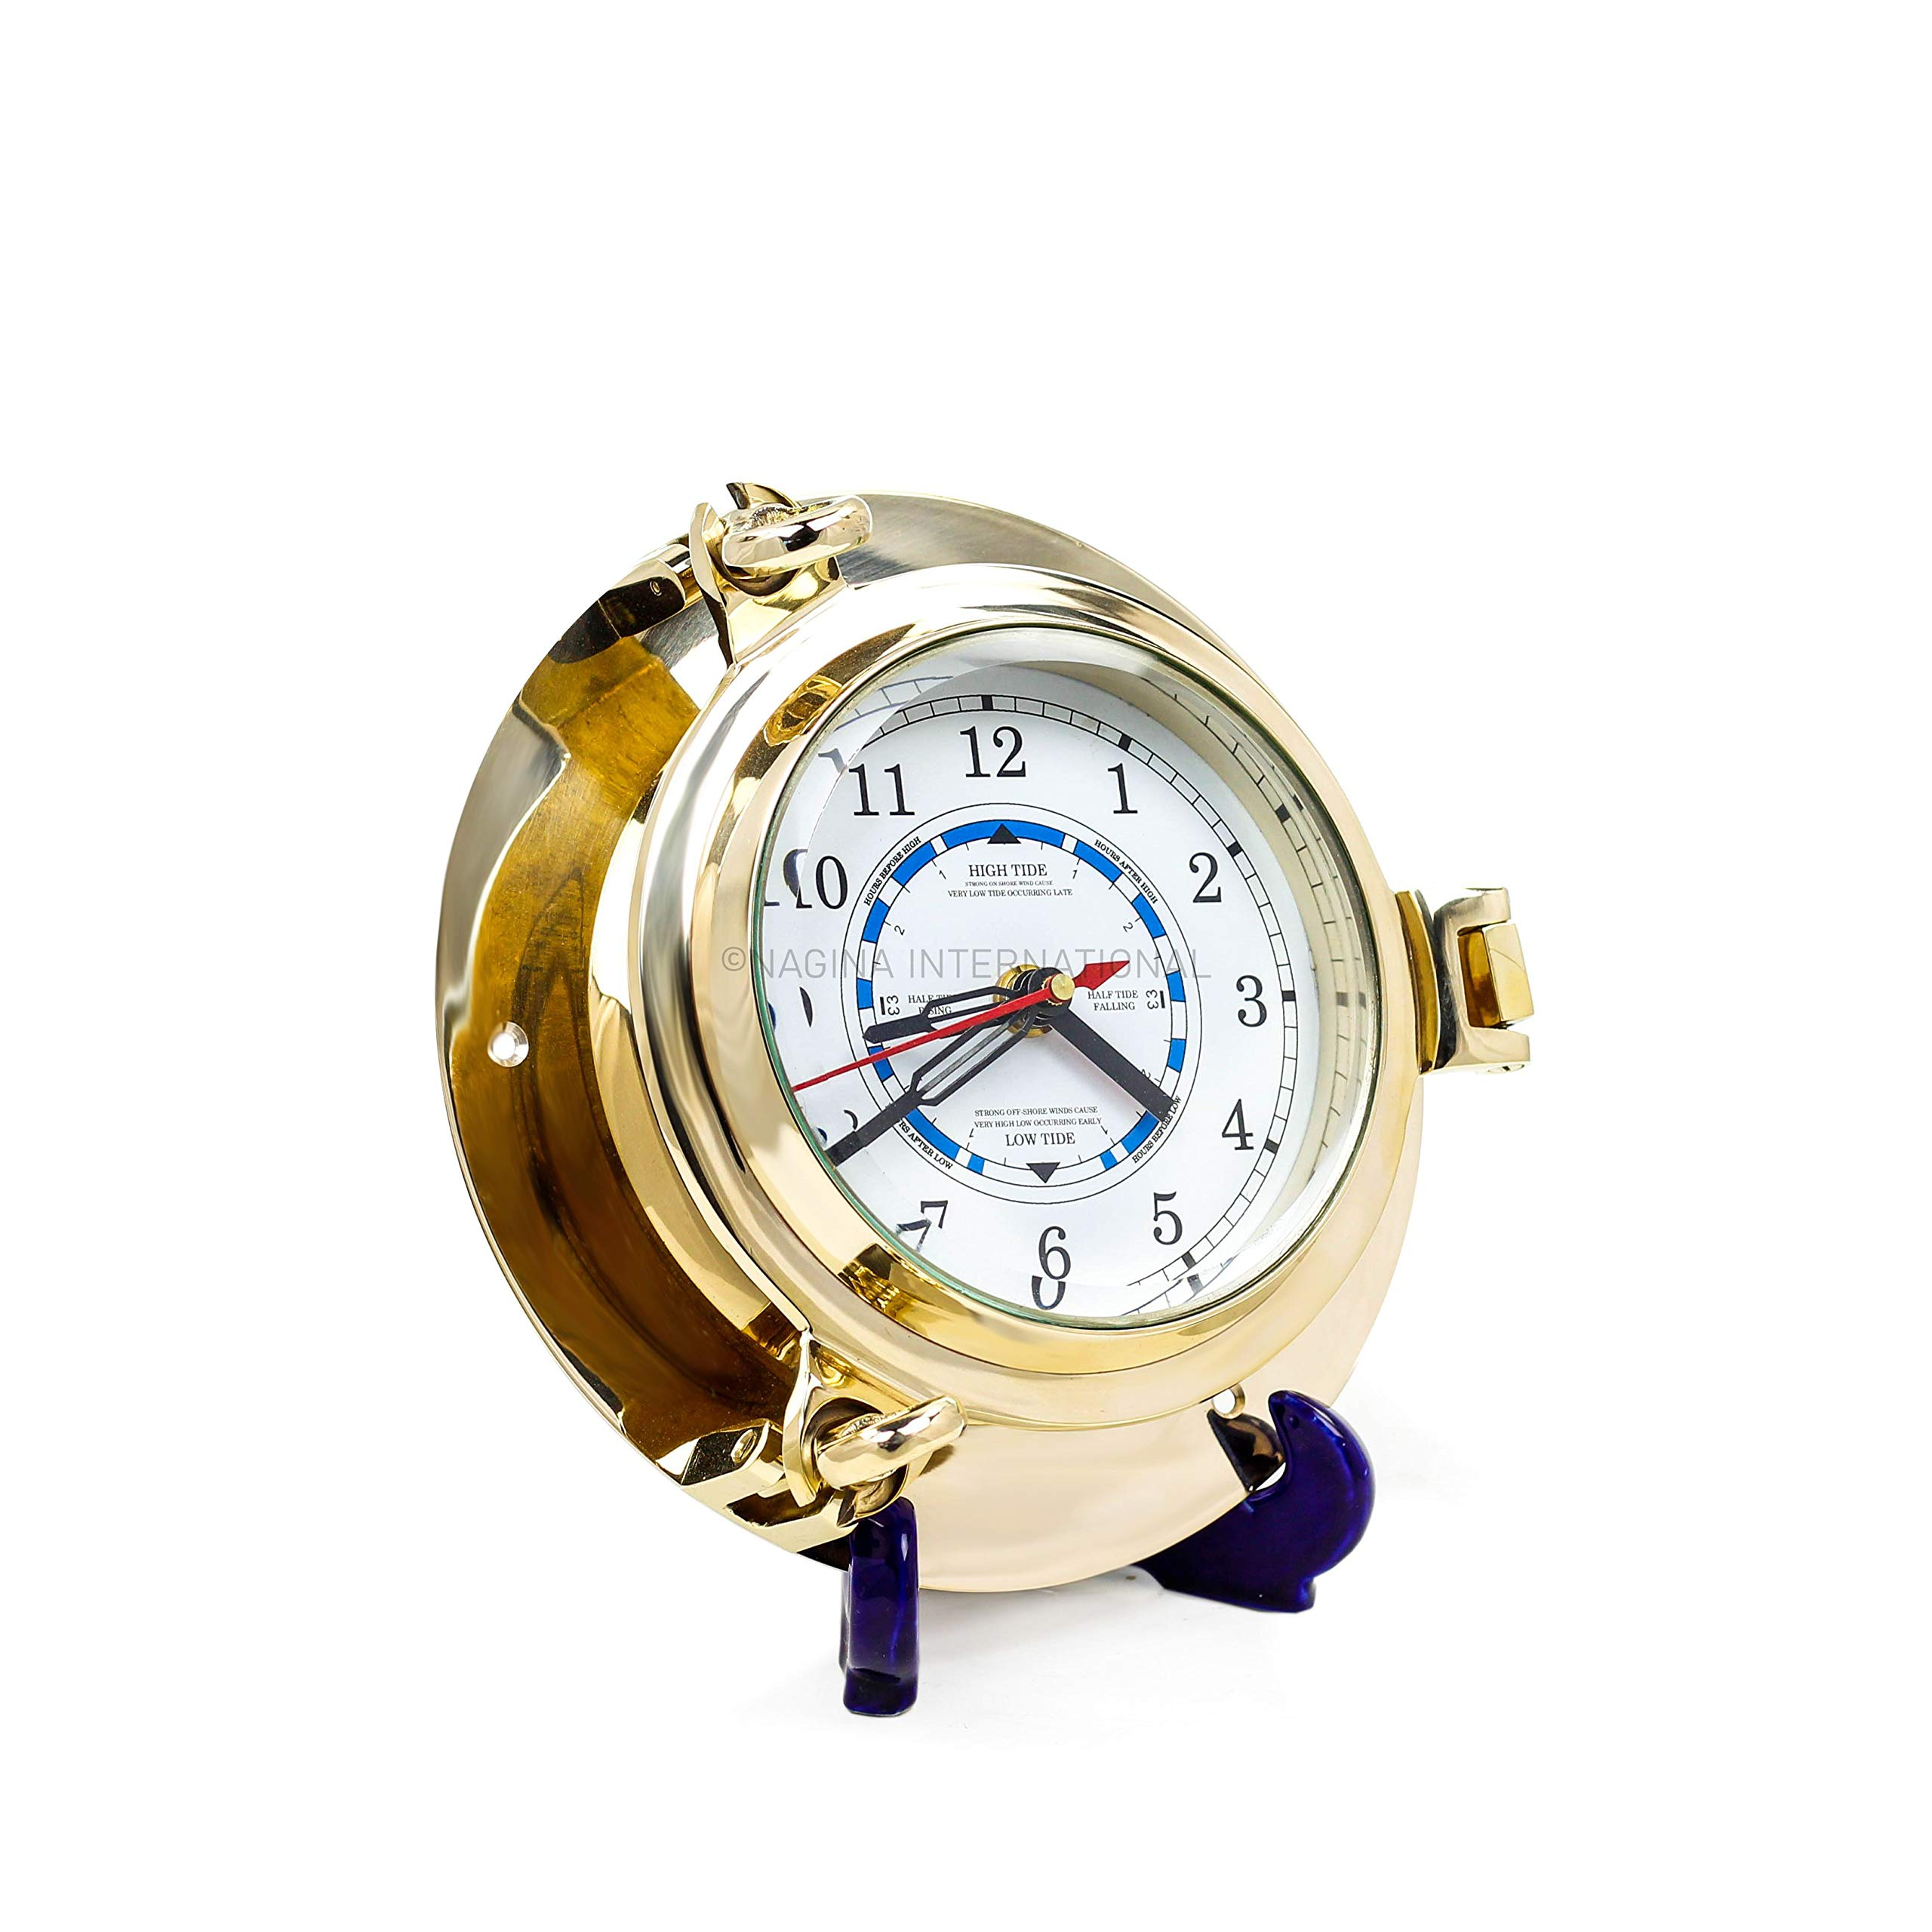 9'' Solid Brass Porthole Time and Tide Clock by Nagina International